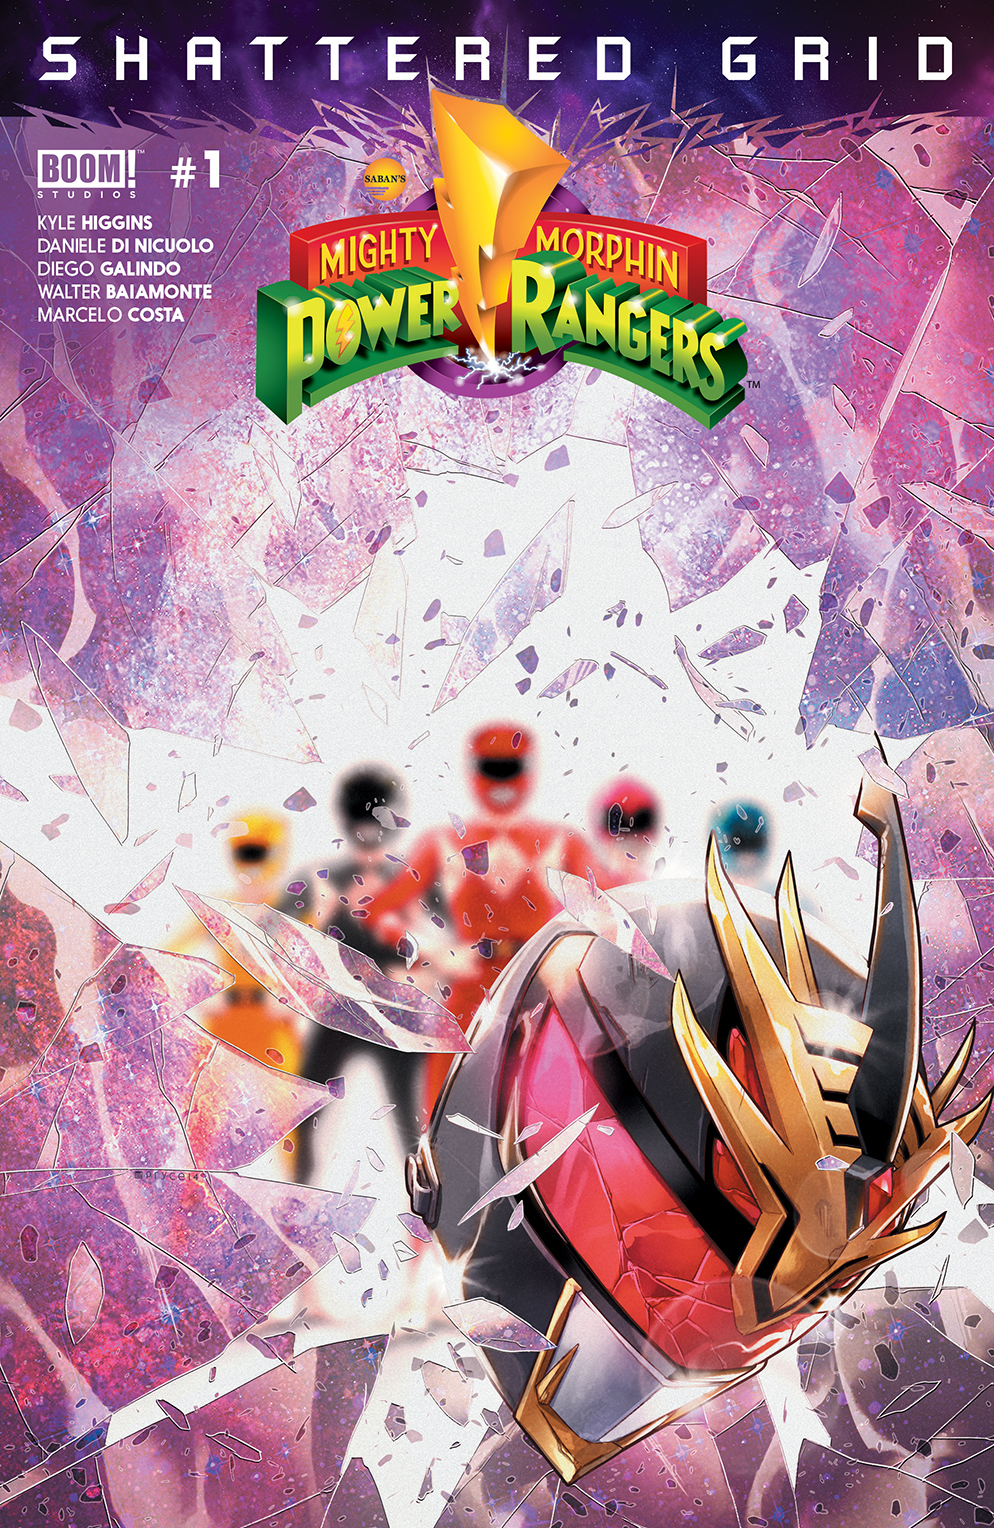 MMPR SHATTERED GRID #1 MAIN